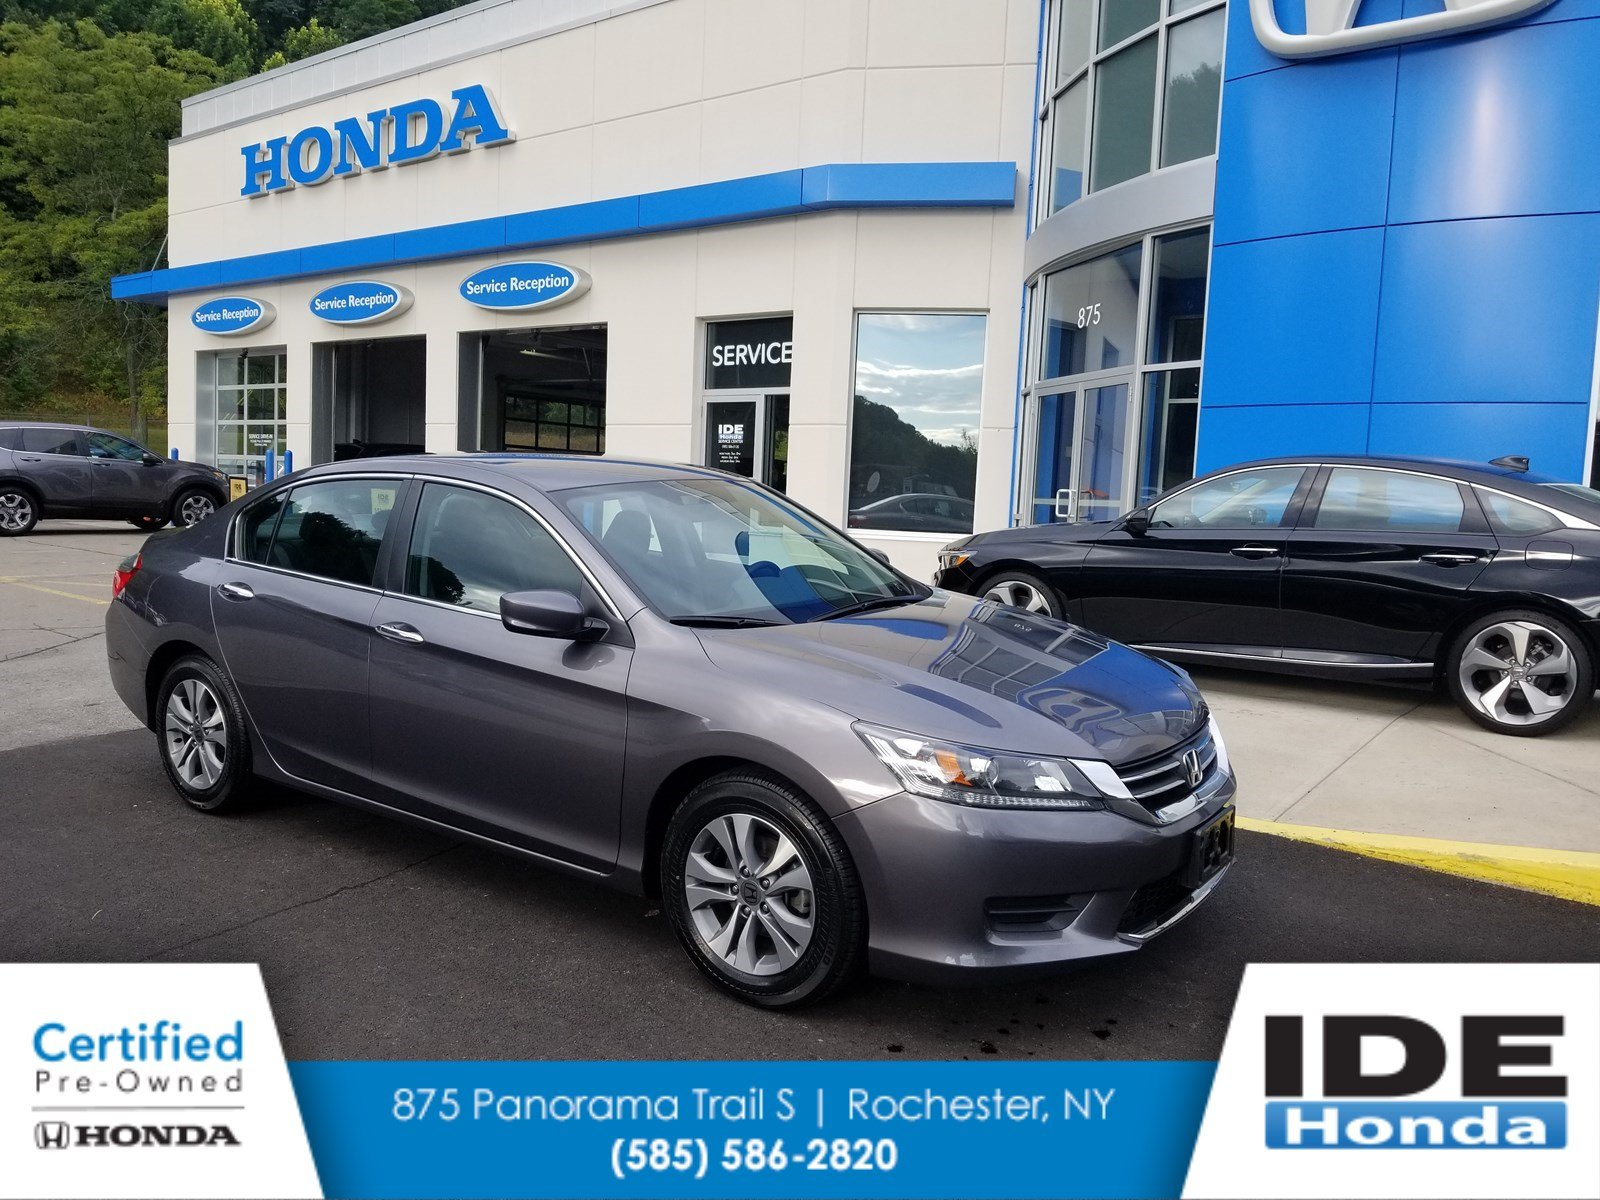 Used Car Dealerships Rochester Ny Beautiful Certified Pre Owned 2015 Honda Accord Sedan Lx 4dr Car In 875